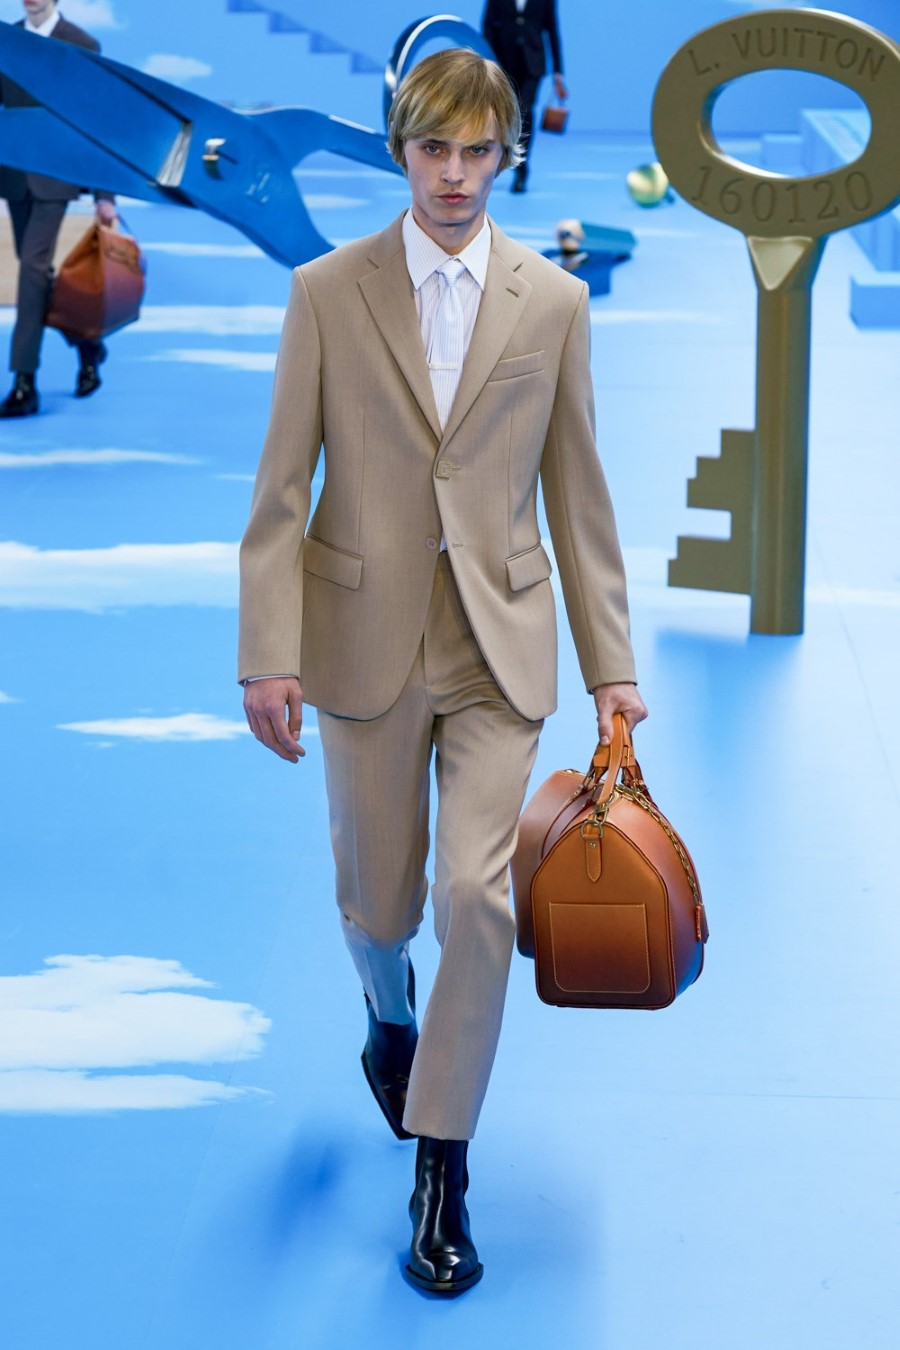 Louis Vuitton - Fall Winter 2020 - Paris Fashion Week Men's